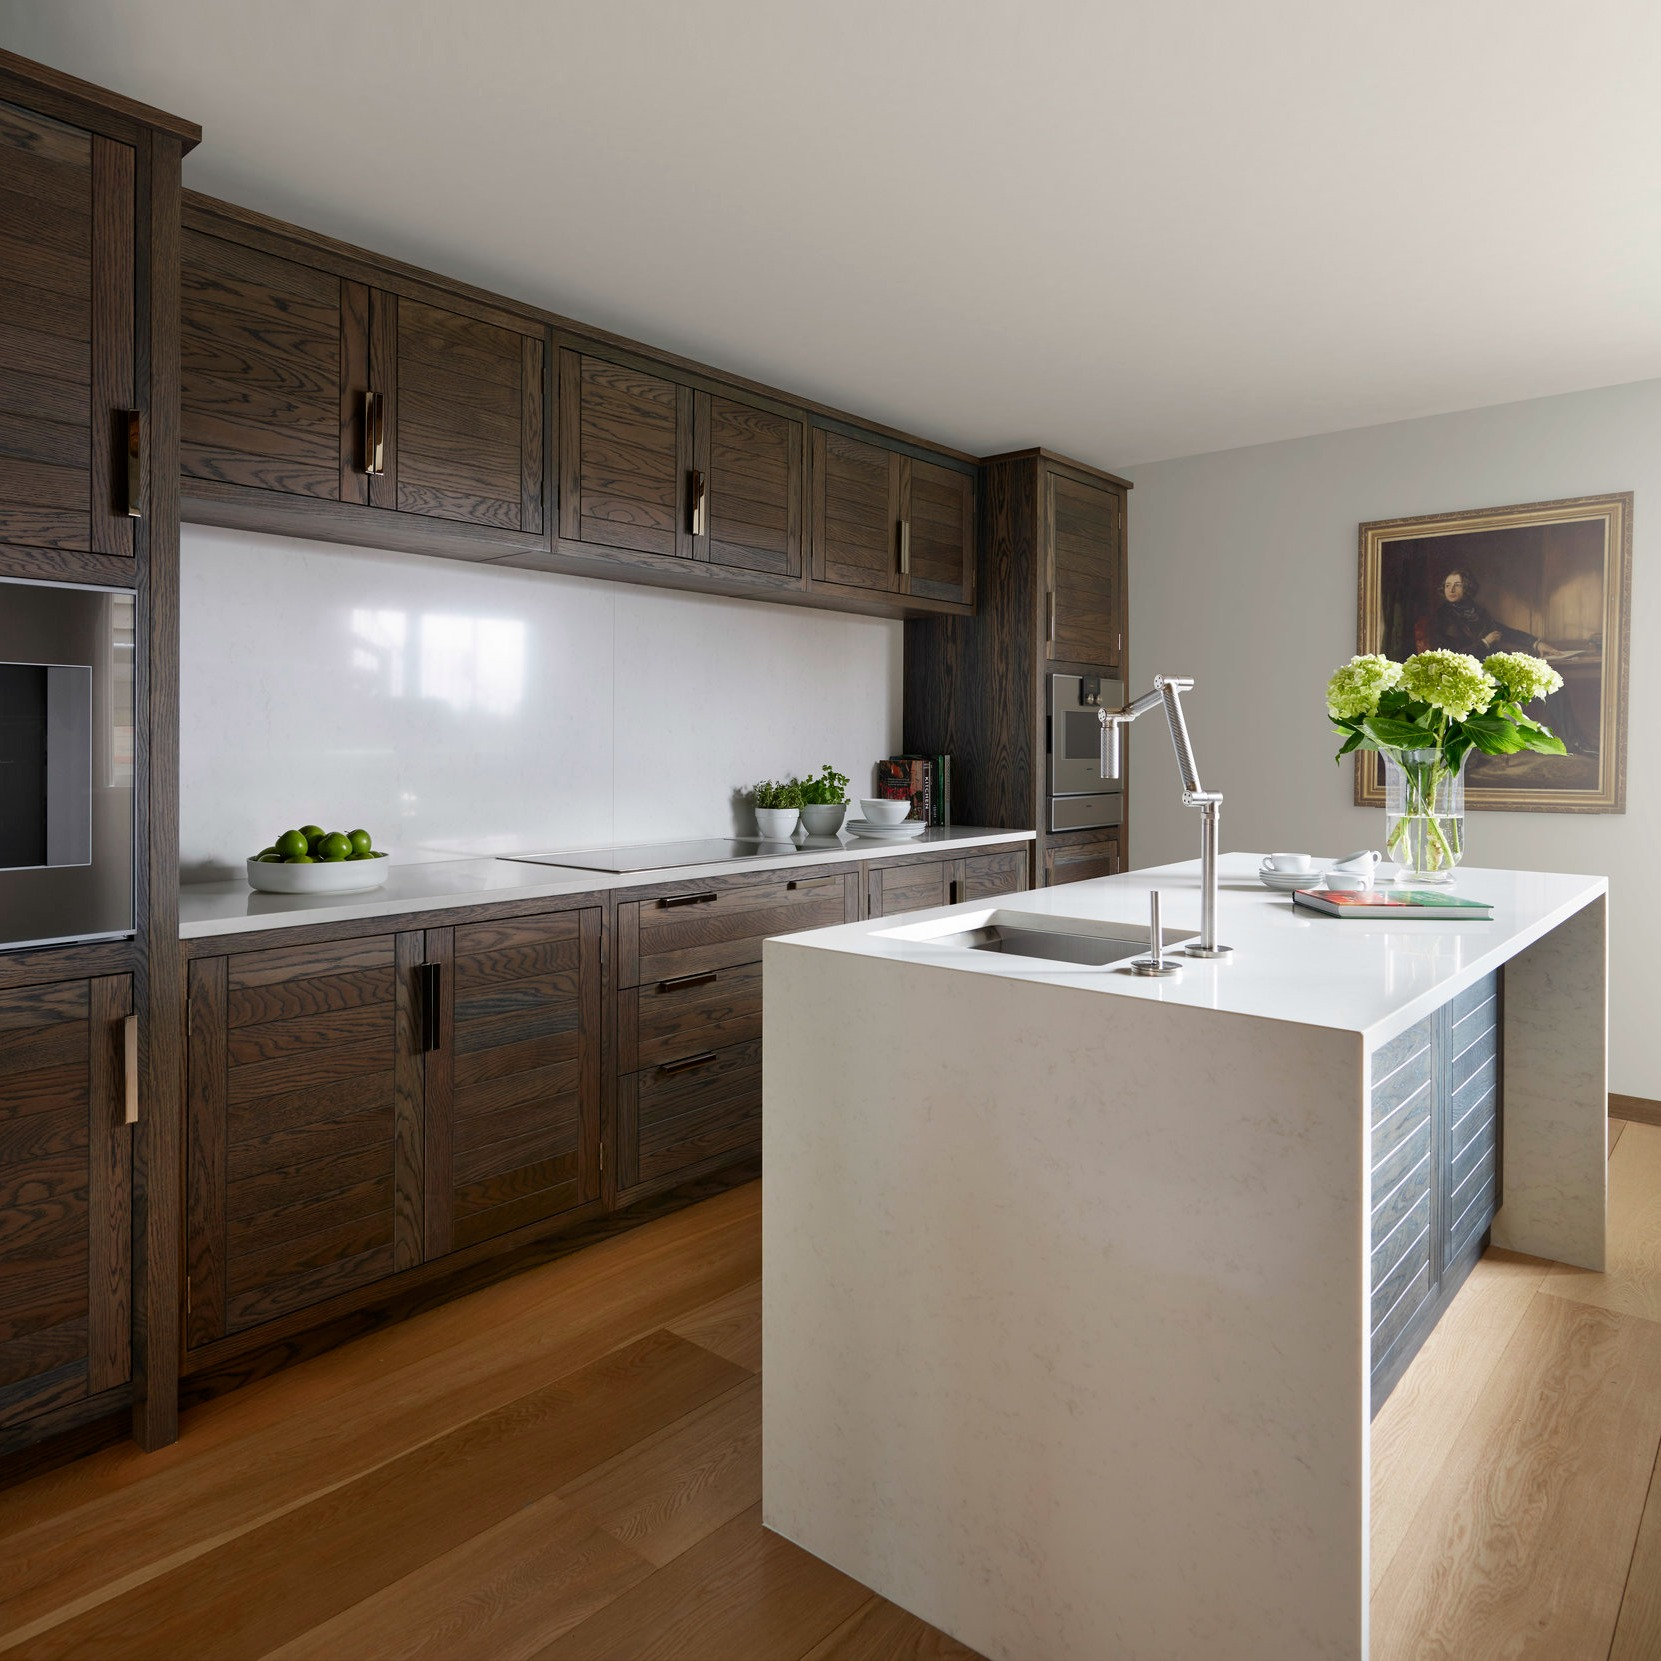 St. Albans Showroom - Markham Kitchen - Humphrey Munson